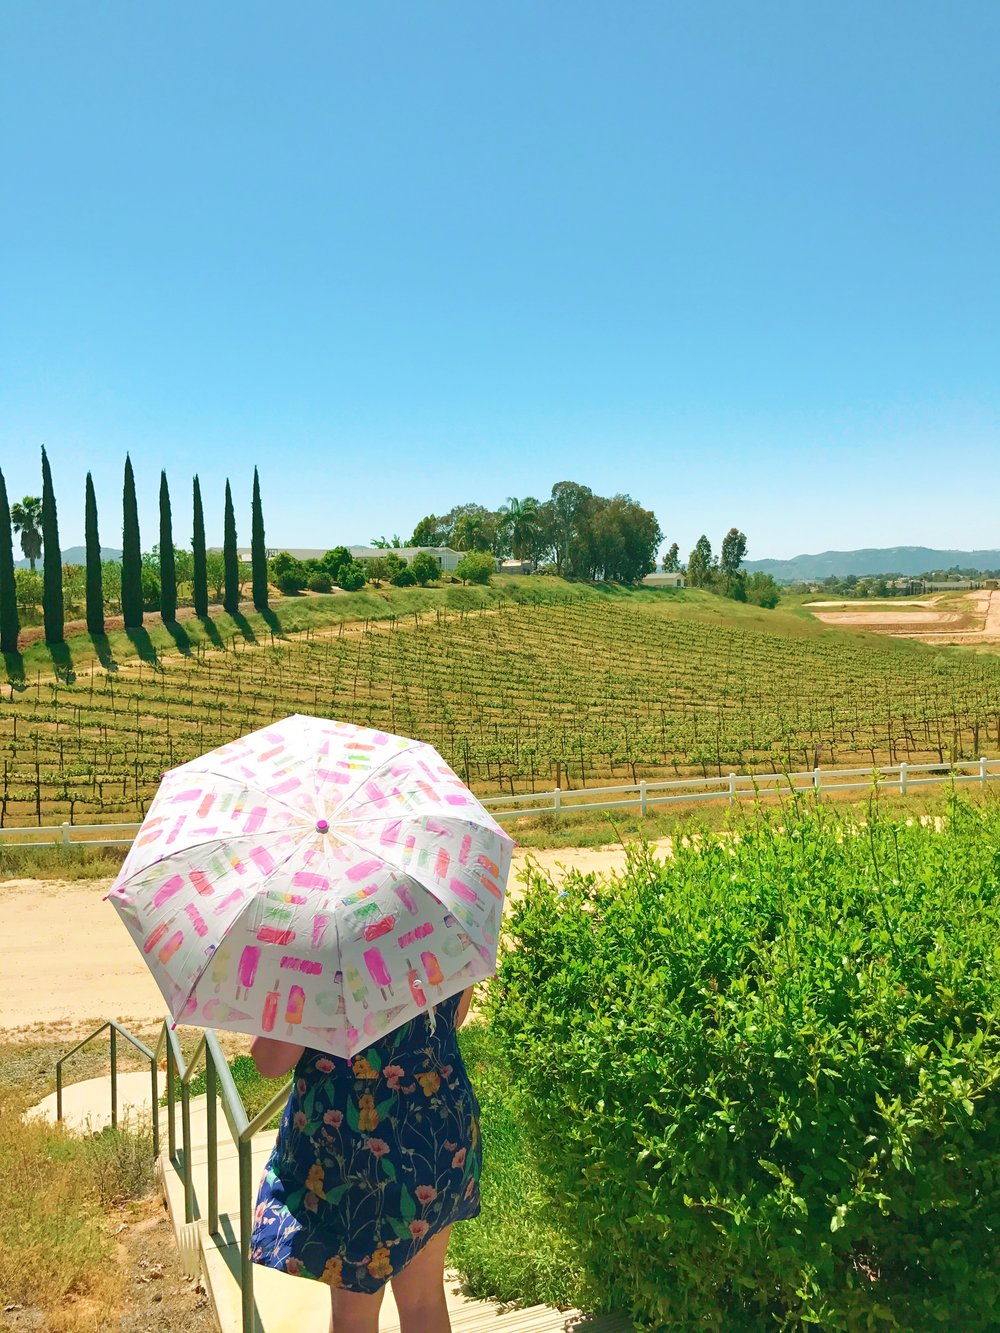 Vines and Kate Spade ice cream umbrellas